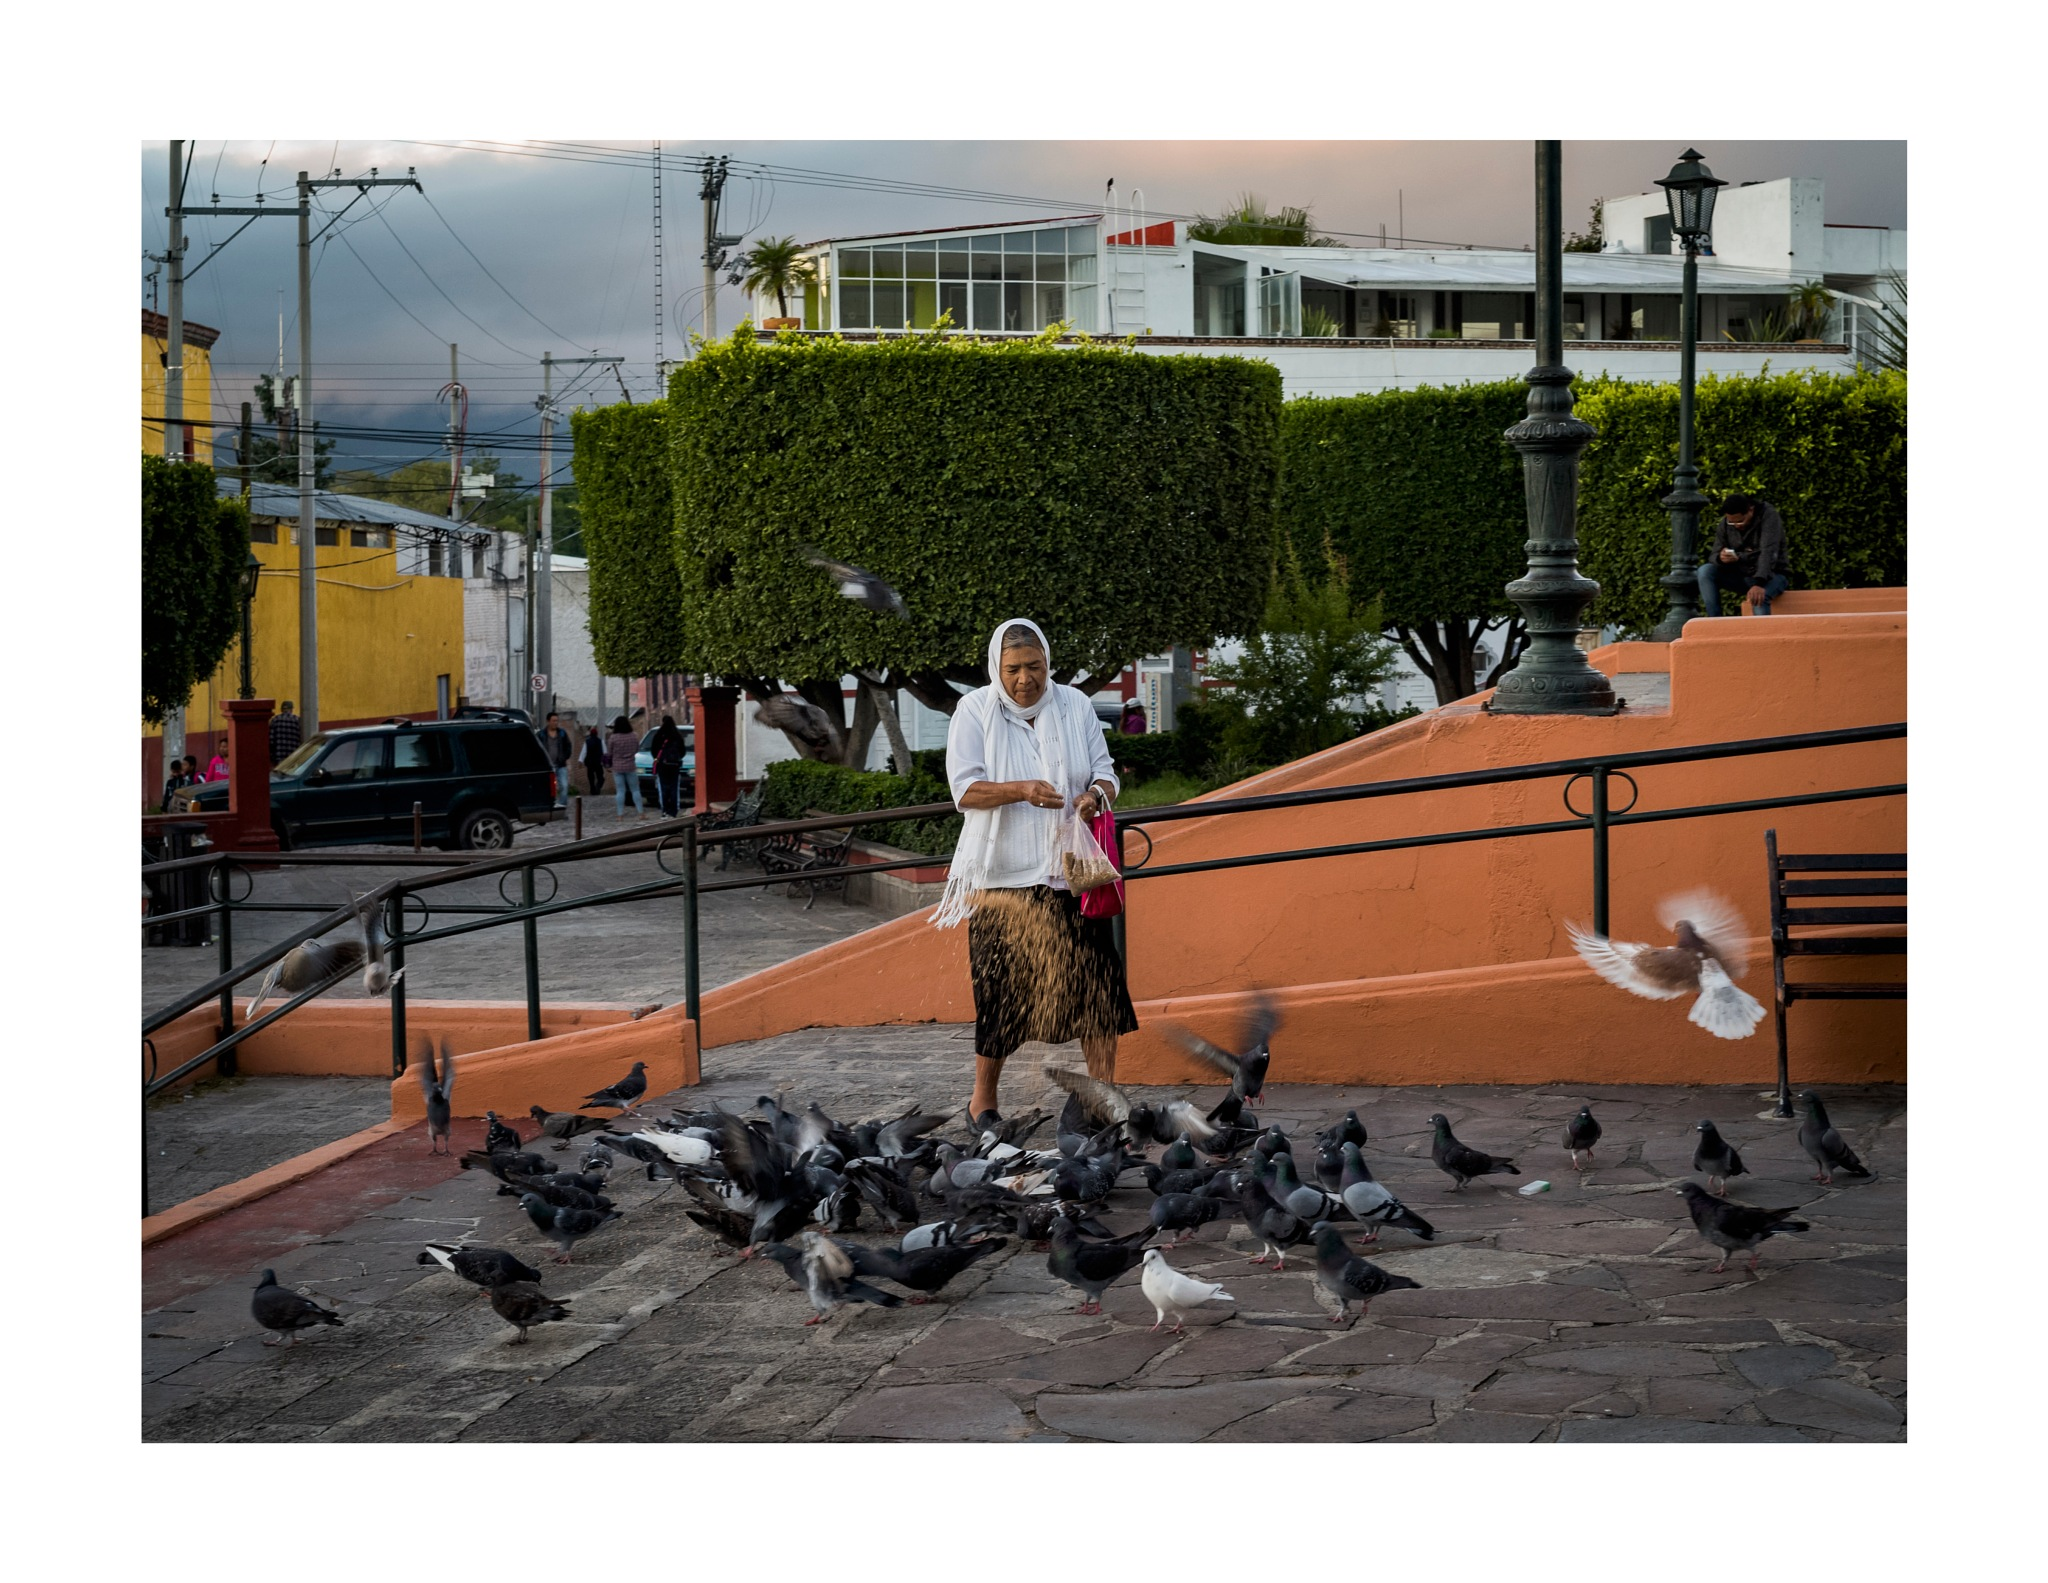 Pigeon Whisperer by jhulton